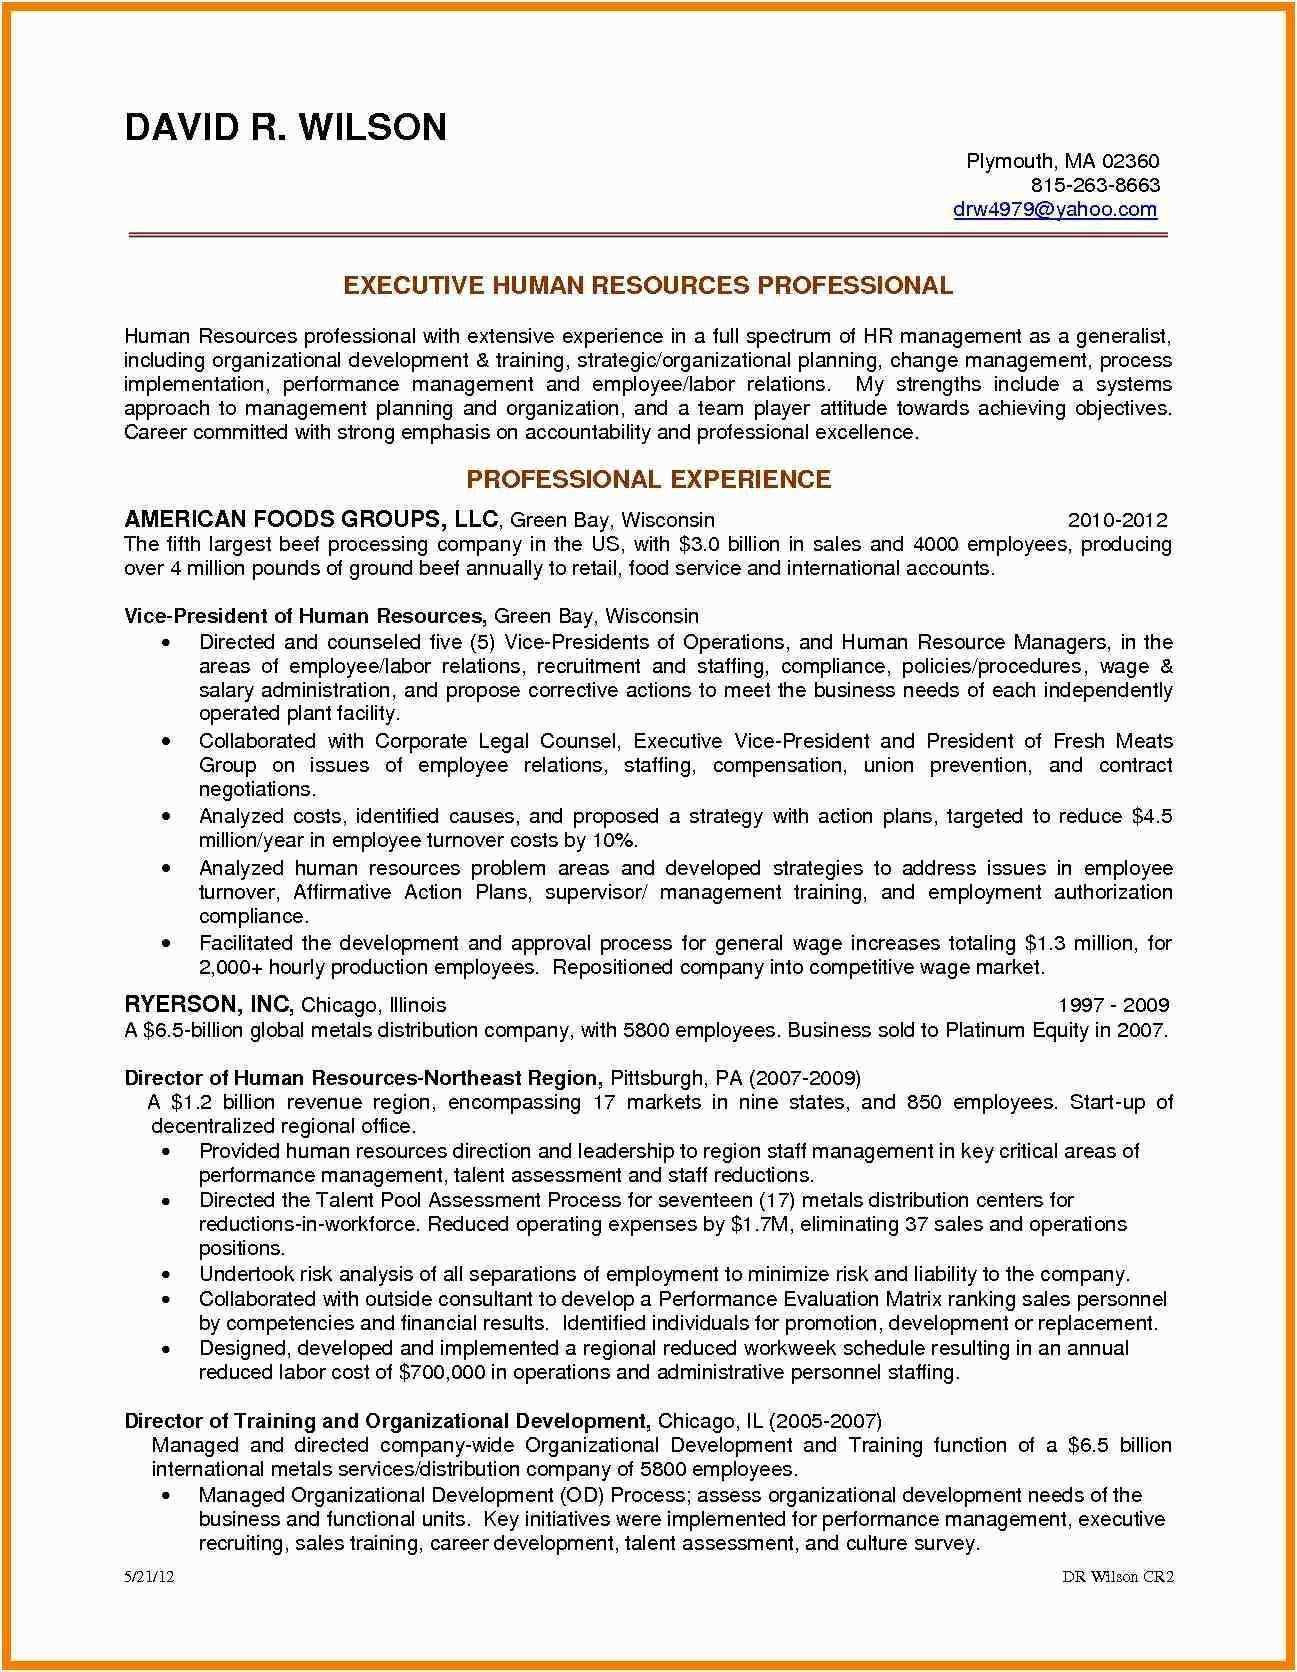 career change objective statement example-Career Change Resume Templates Fresh Objective Statement Resume Examples Unique Resume Objectives For 2-d